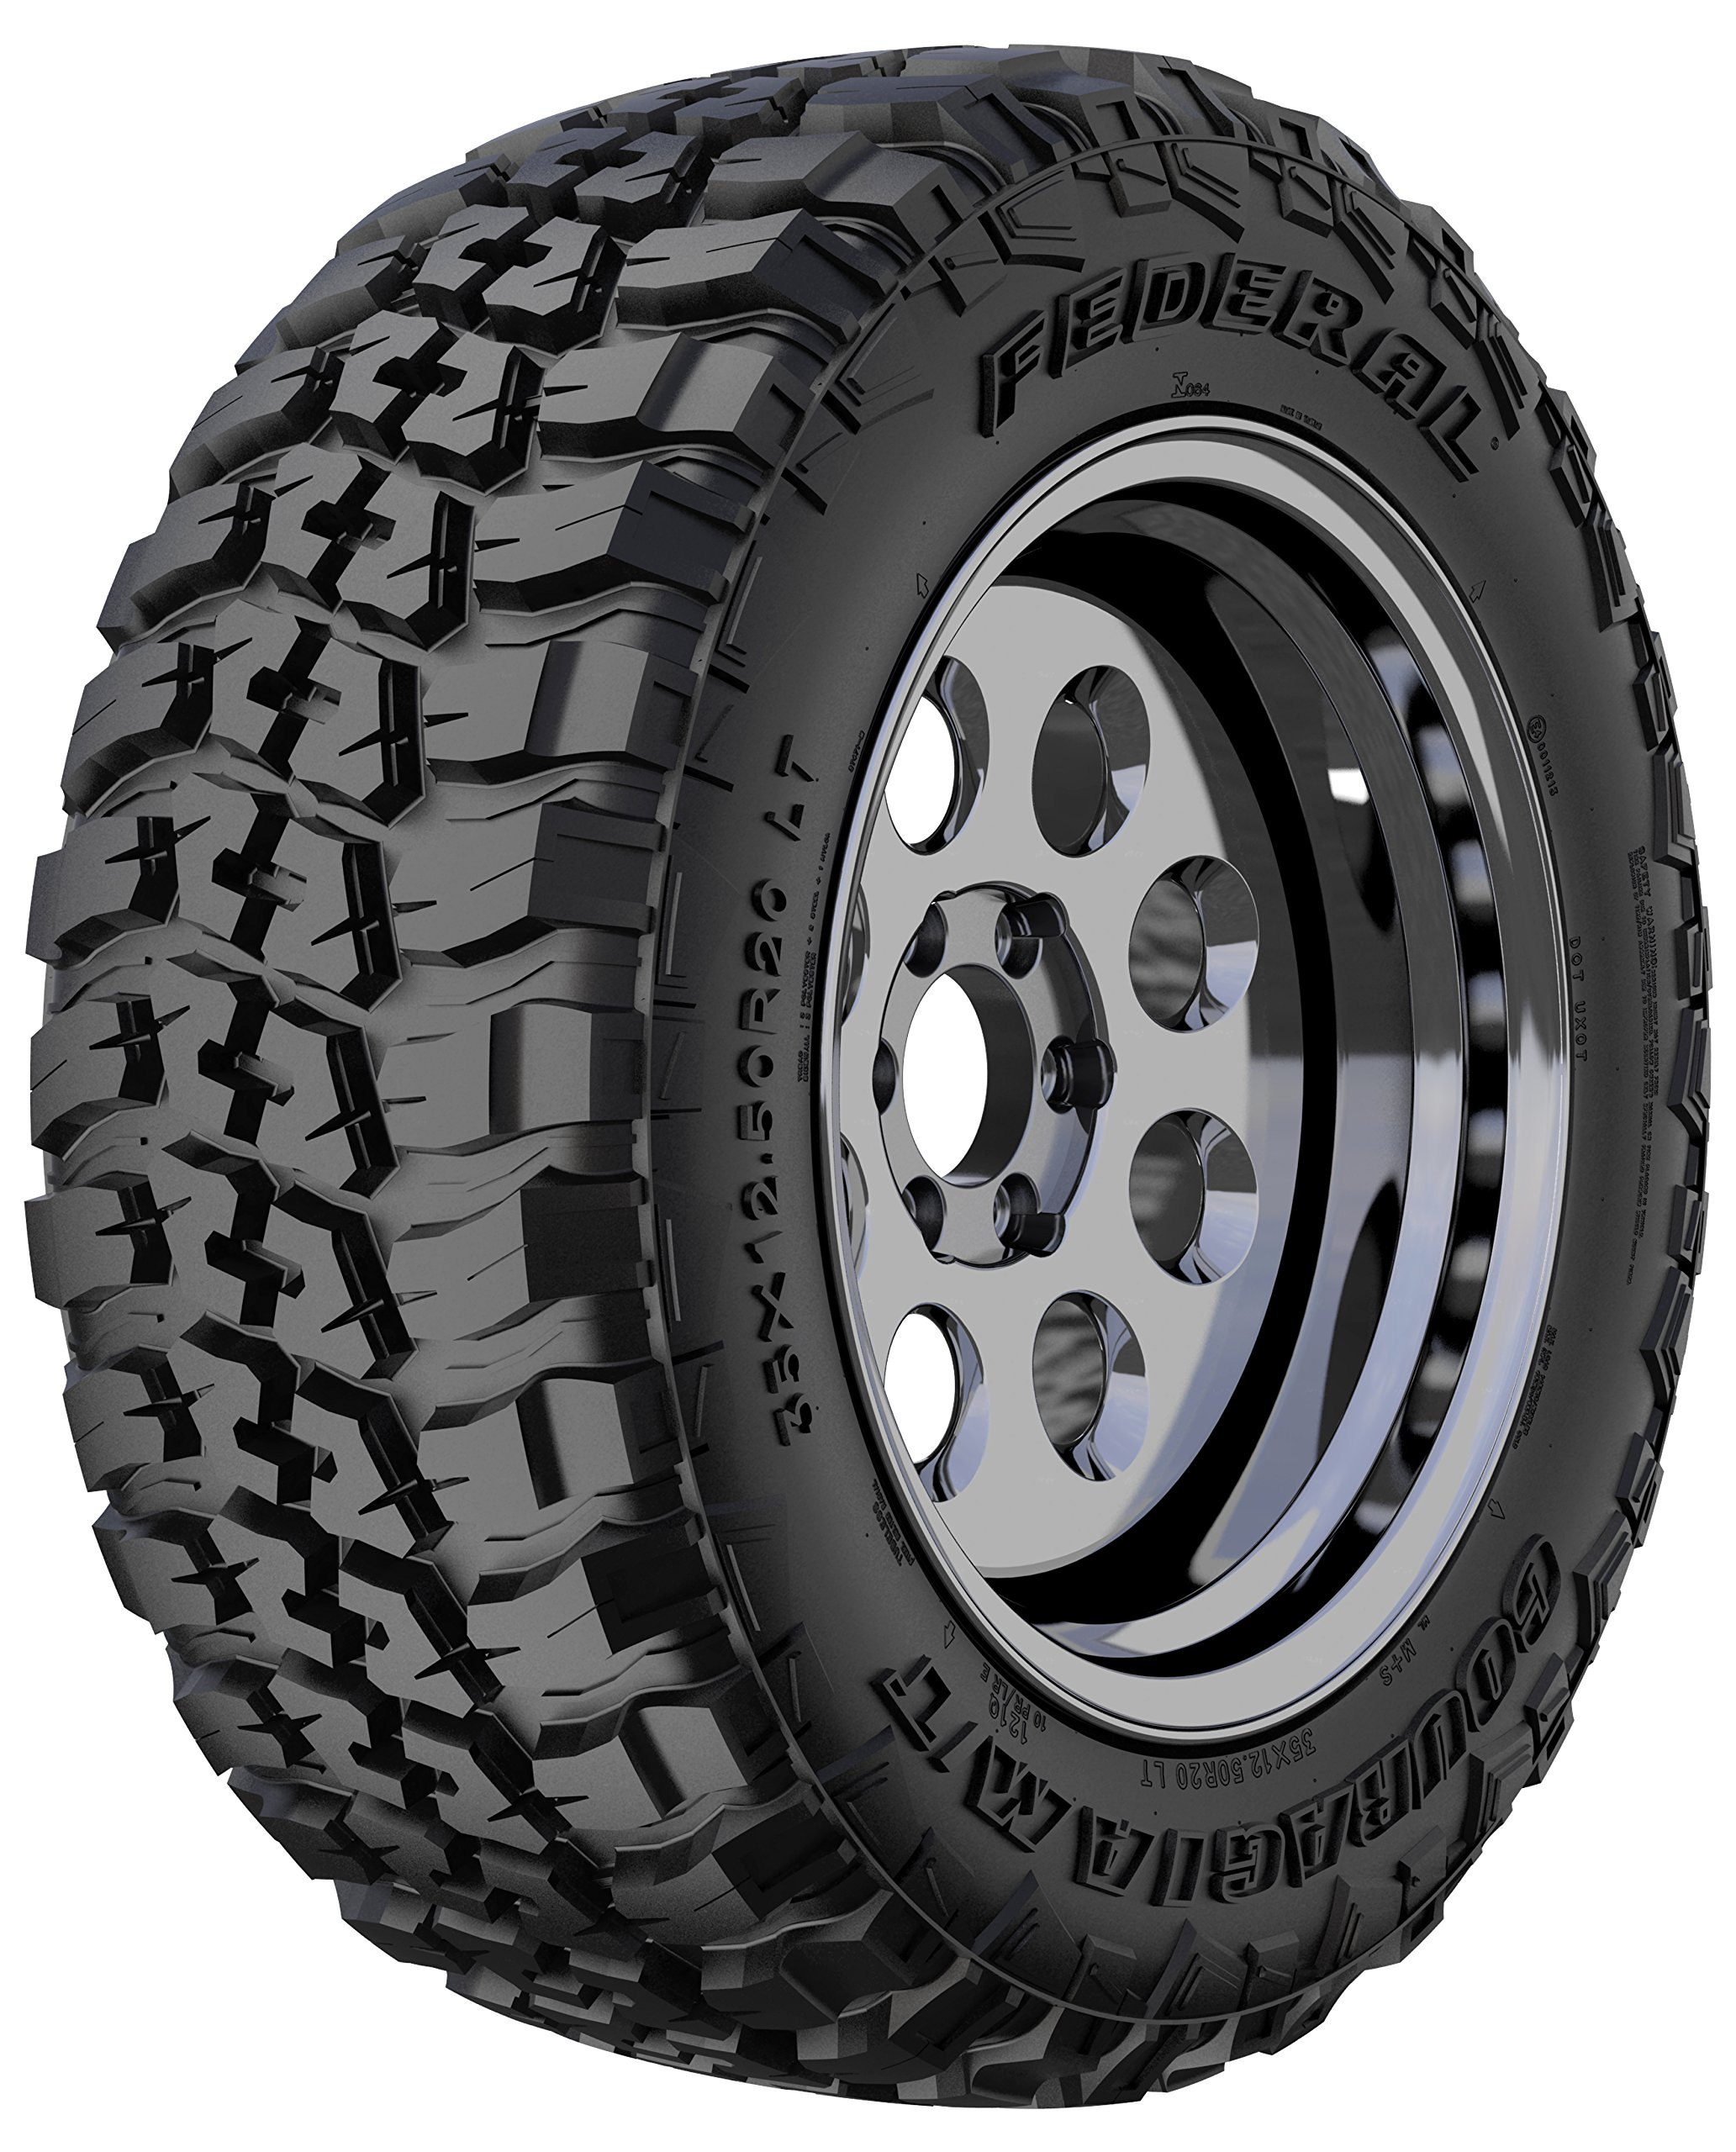 Federal Couragia M/T Mud-Terrain Radial Tire - LT265/75R16 120Q